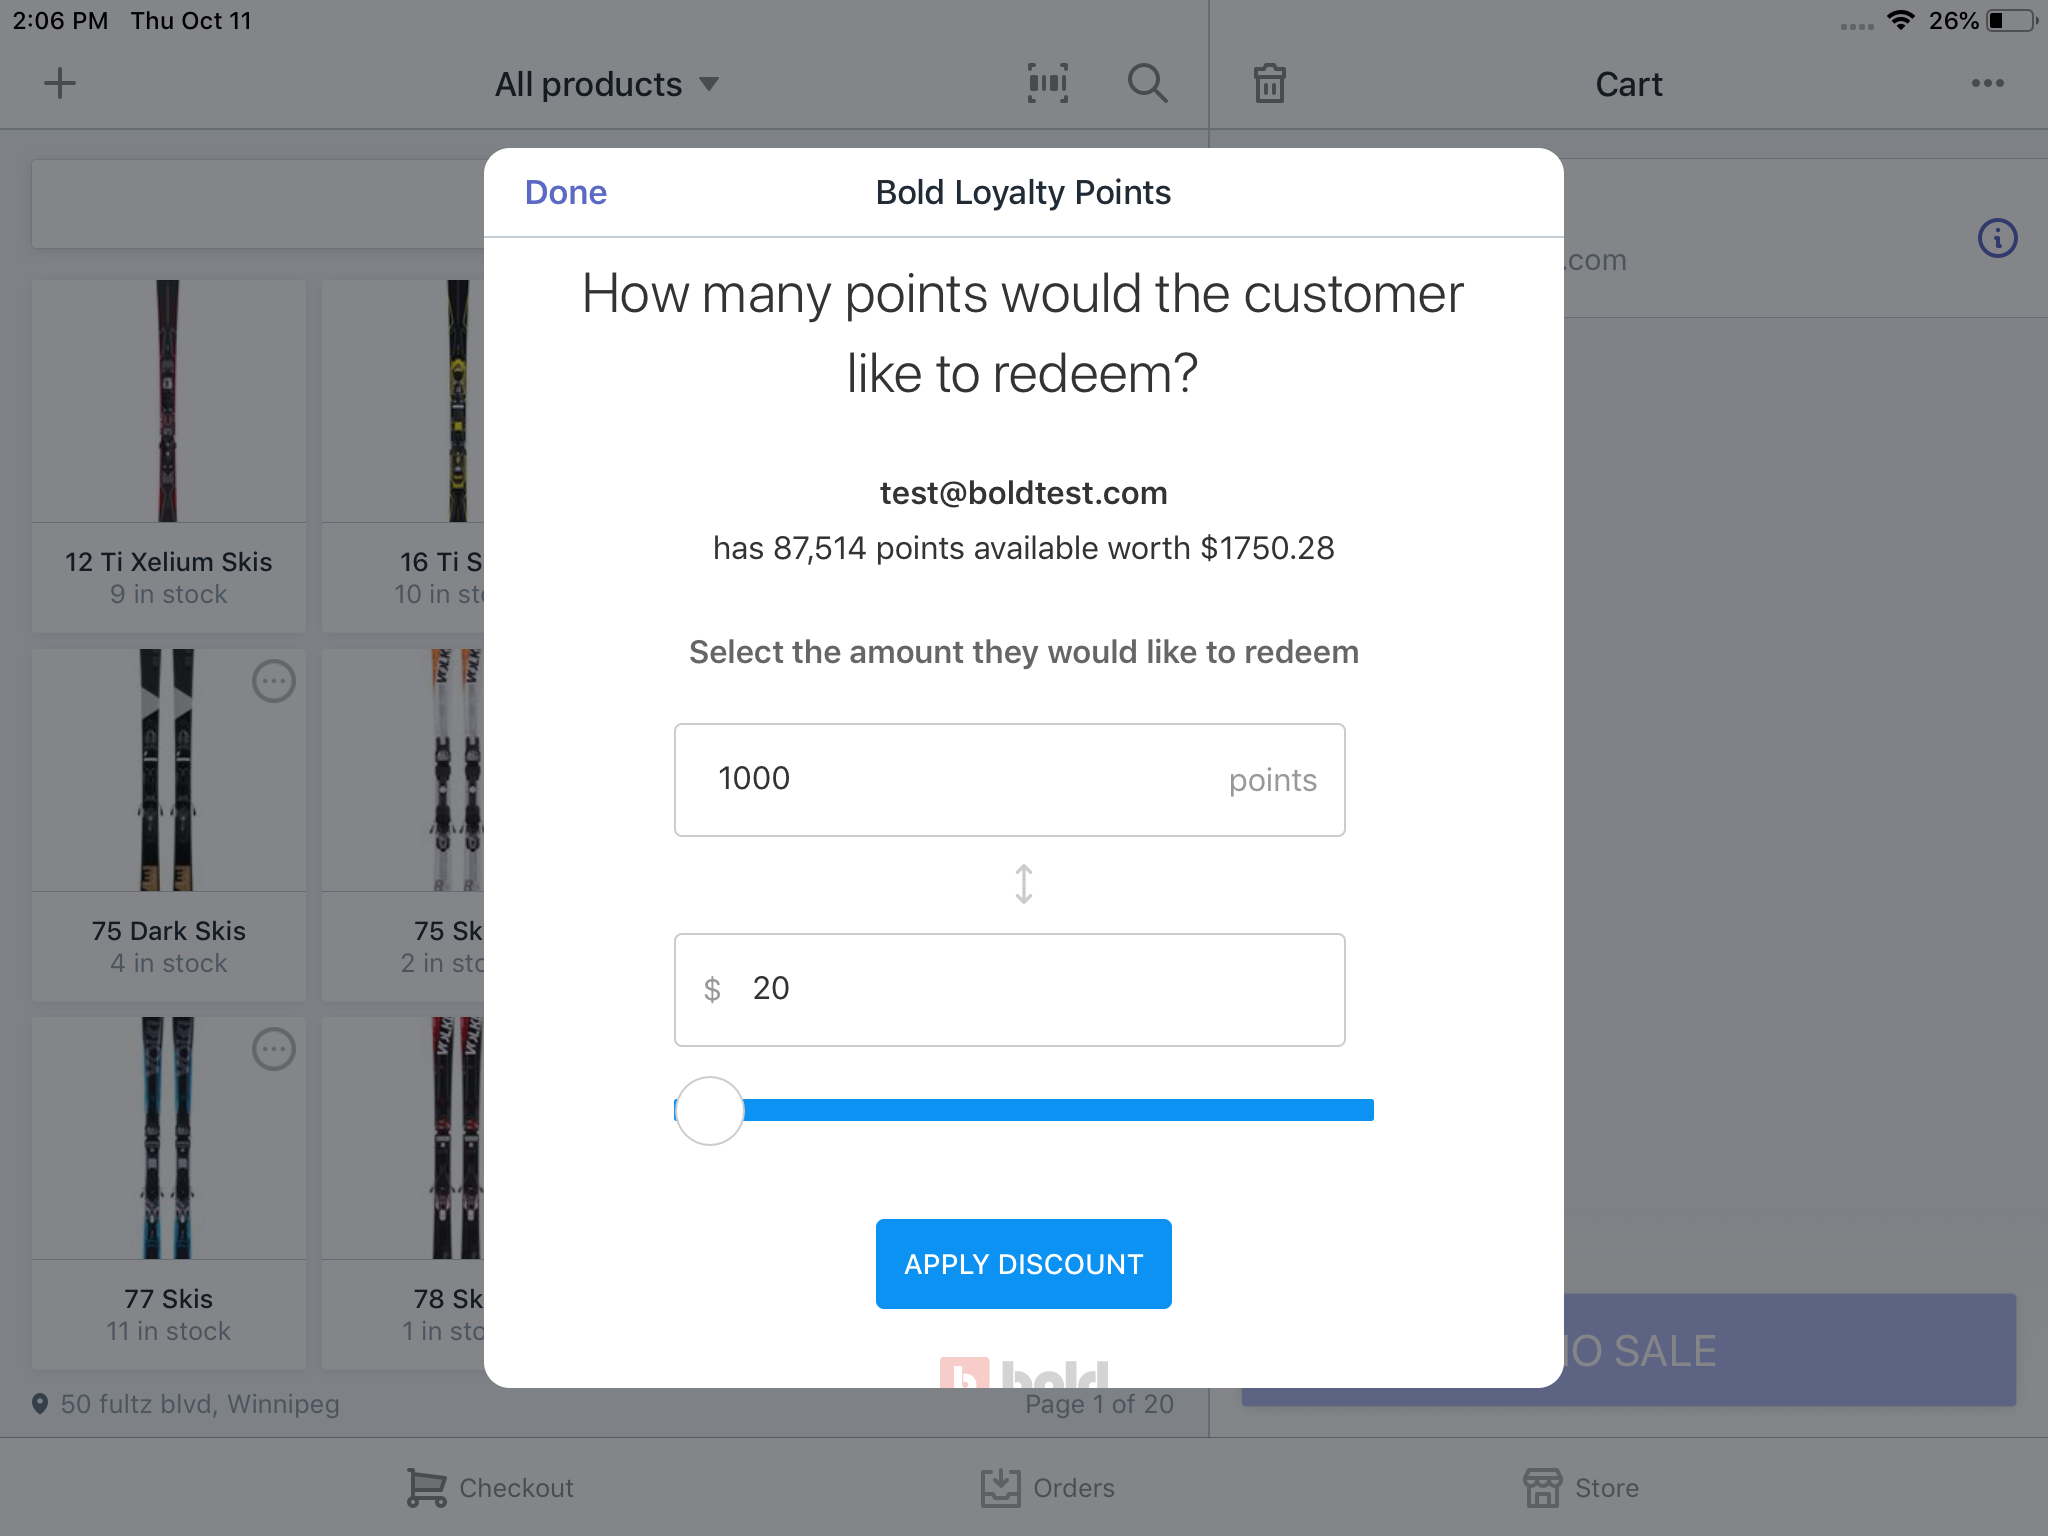 Checking customer's points information